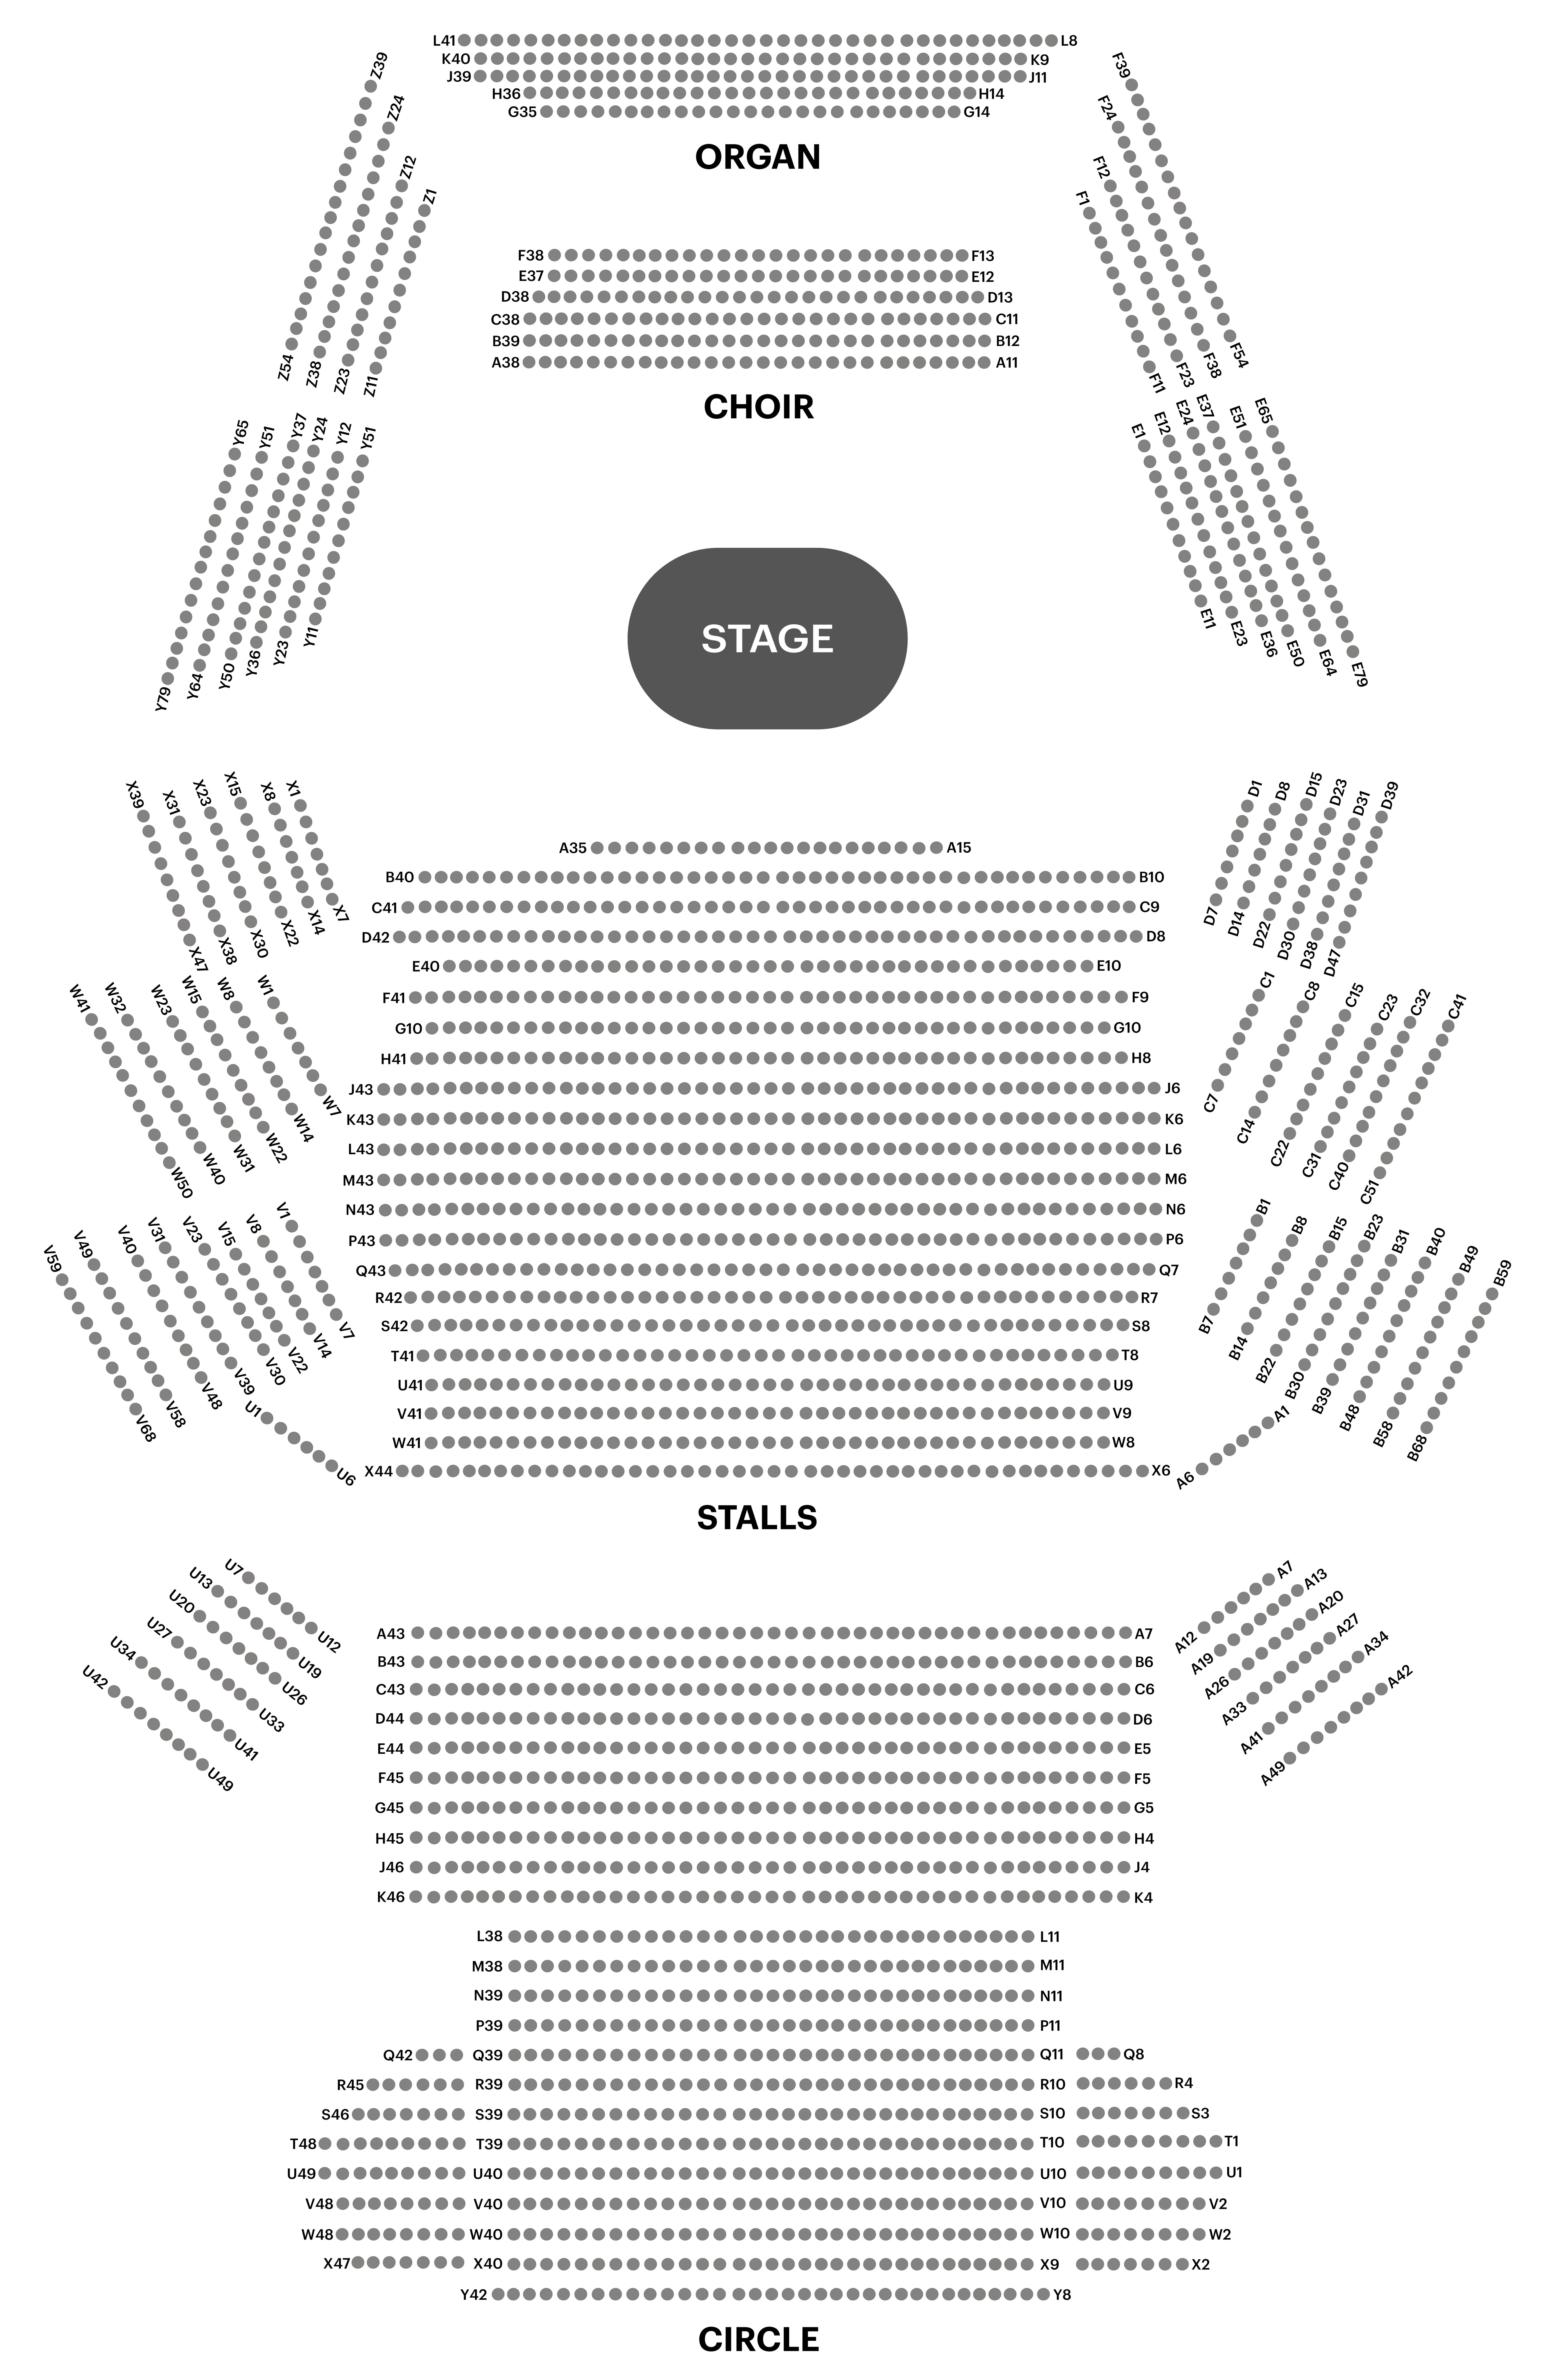 Concert Hall Seating Chart